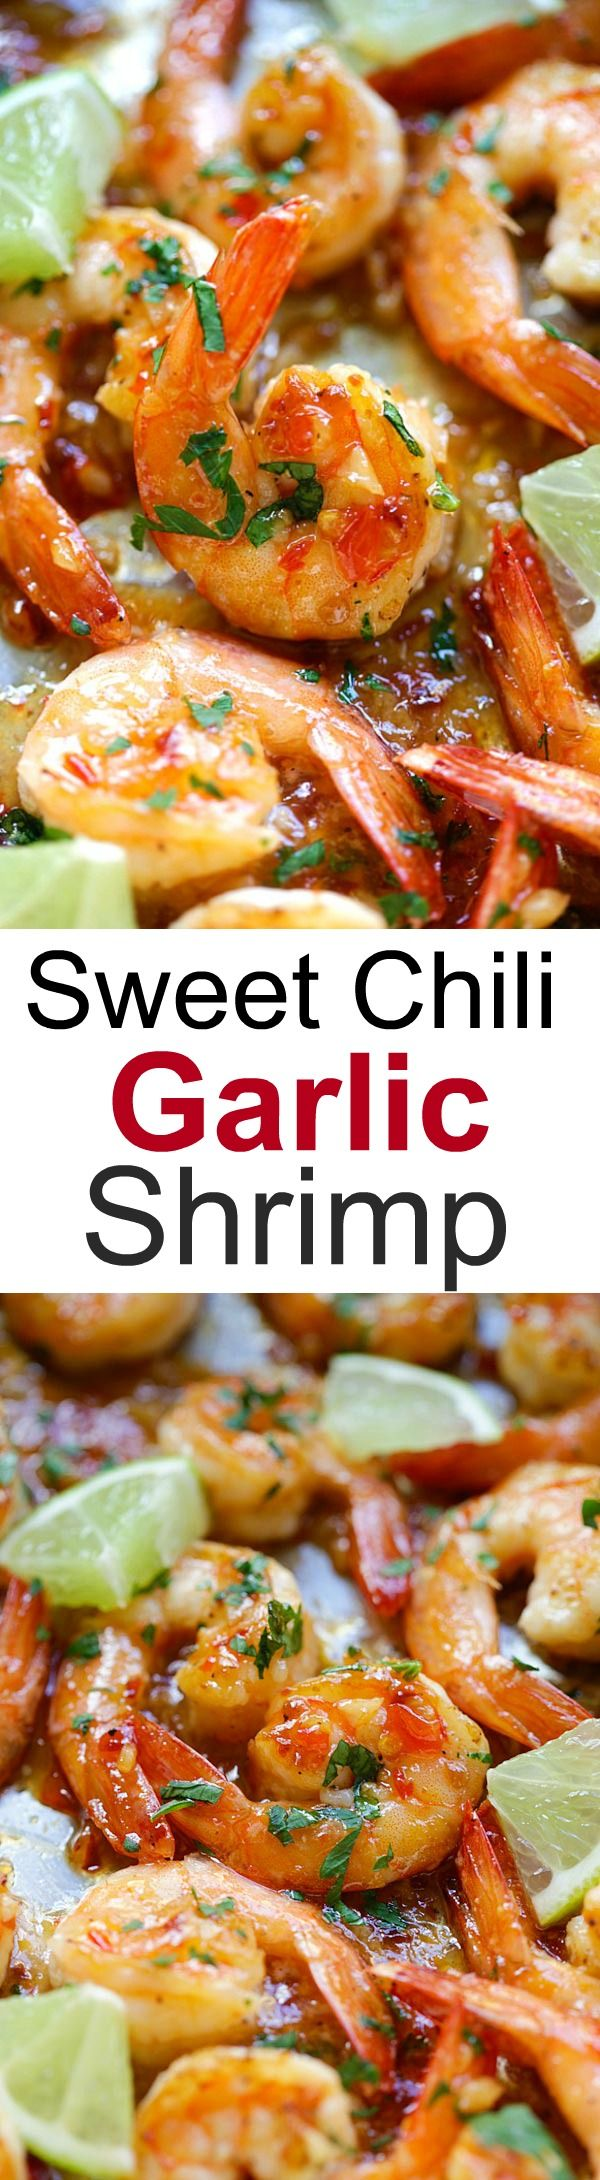 Sweet Chili Garlic Shrimp - easiest and most delicious shrimp you can make in 15 mins with garlic and Thai sweet chili sauce. SO good   rasamalaysia.com